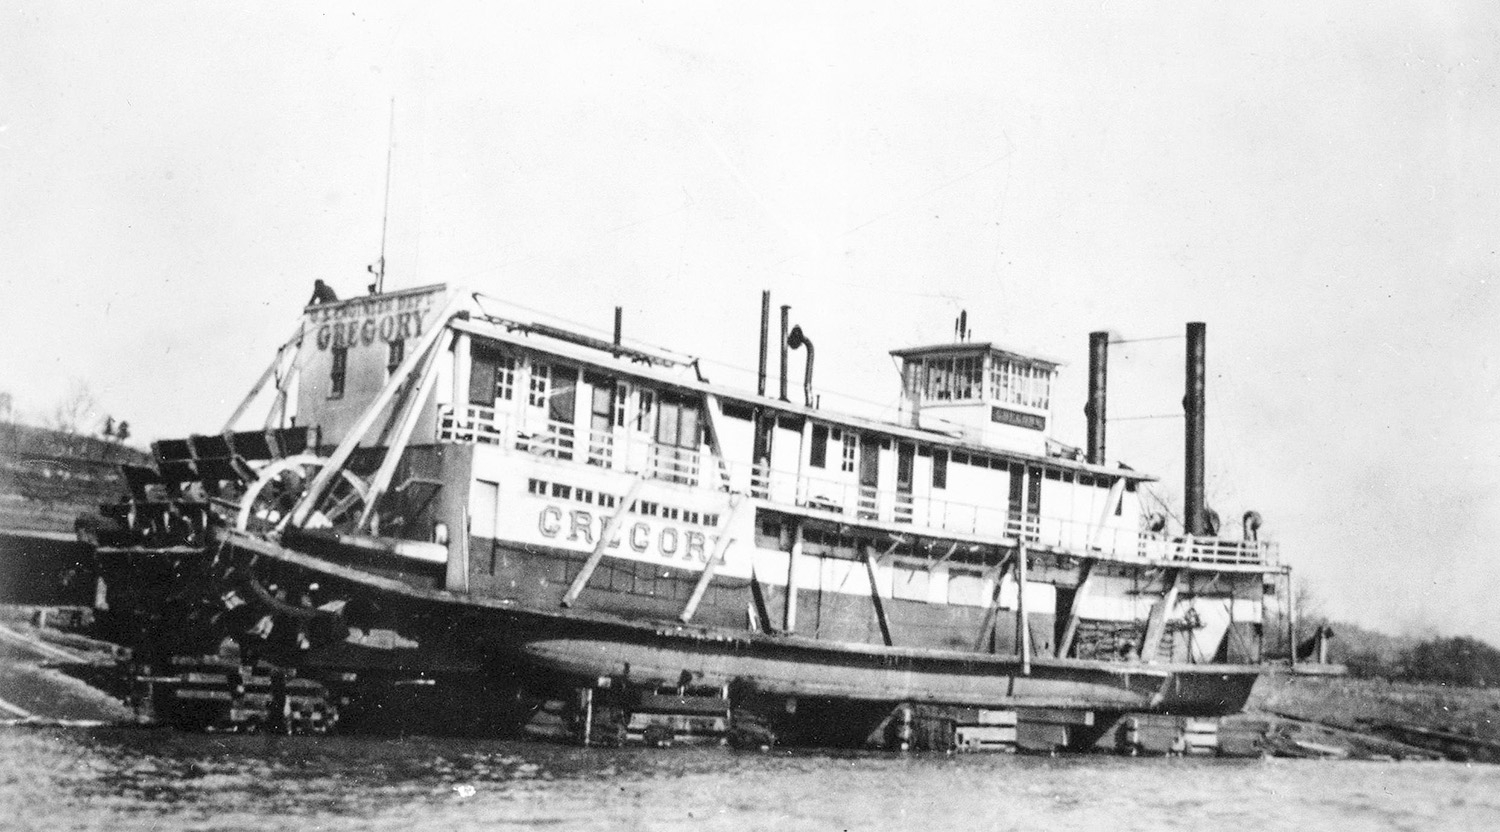 The steam towboat Gregory on the ways at Madison, Ind., in February 1920.